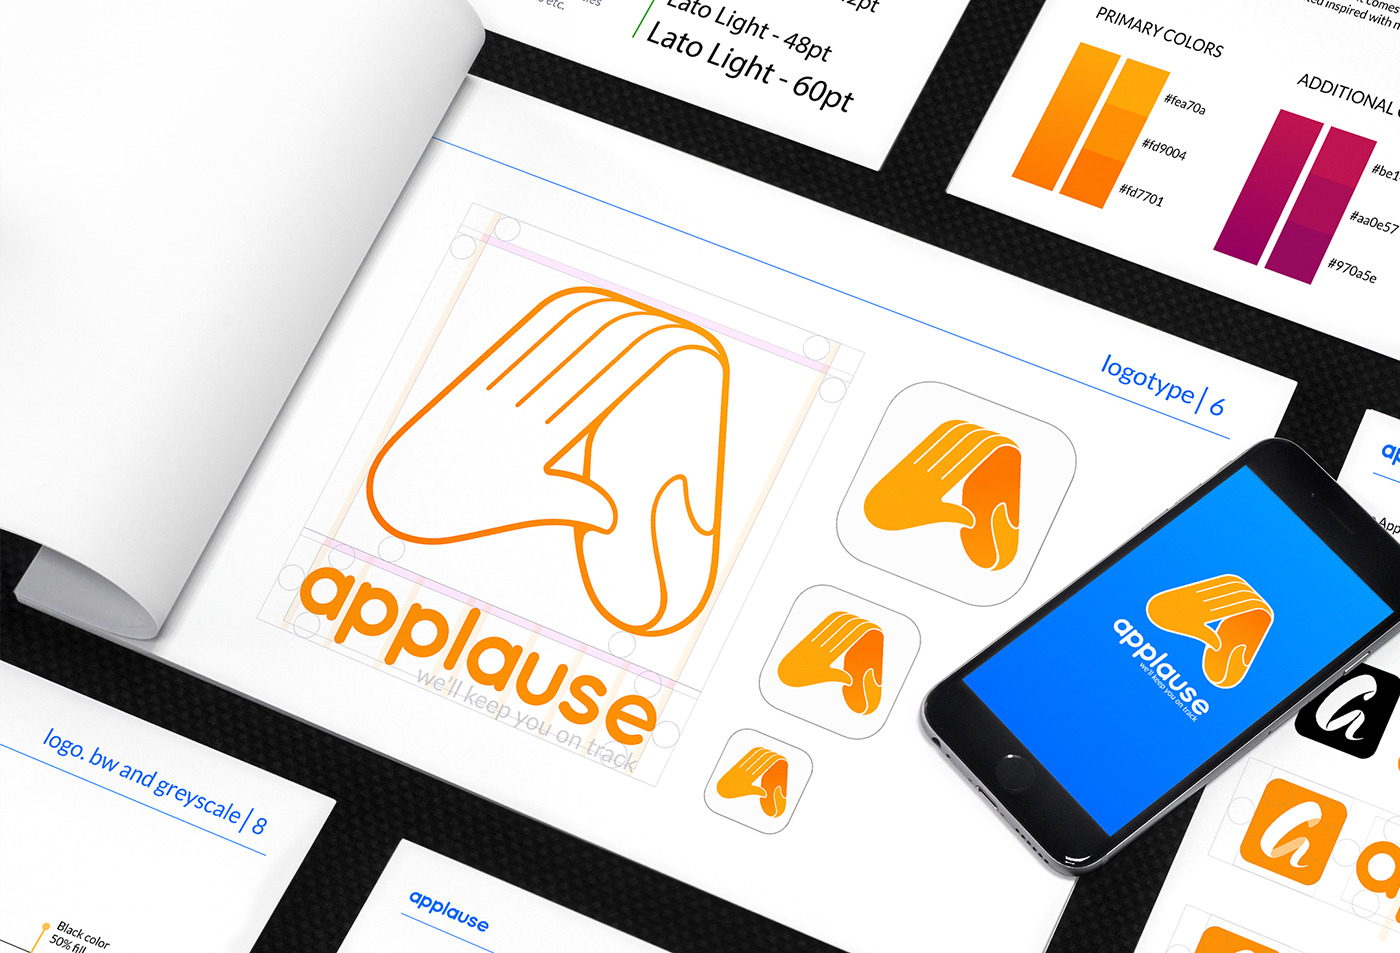 applause style guide